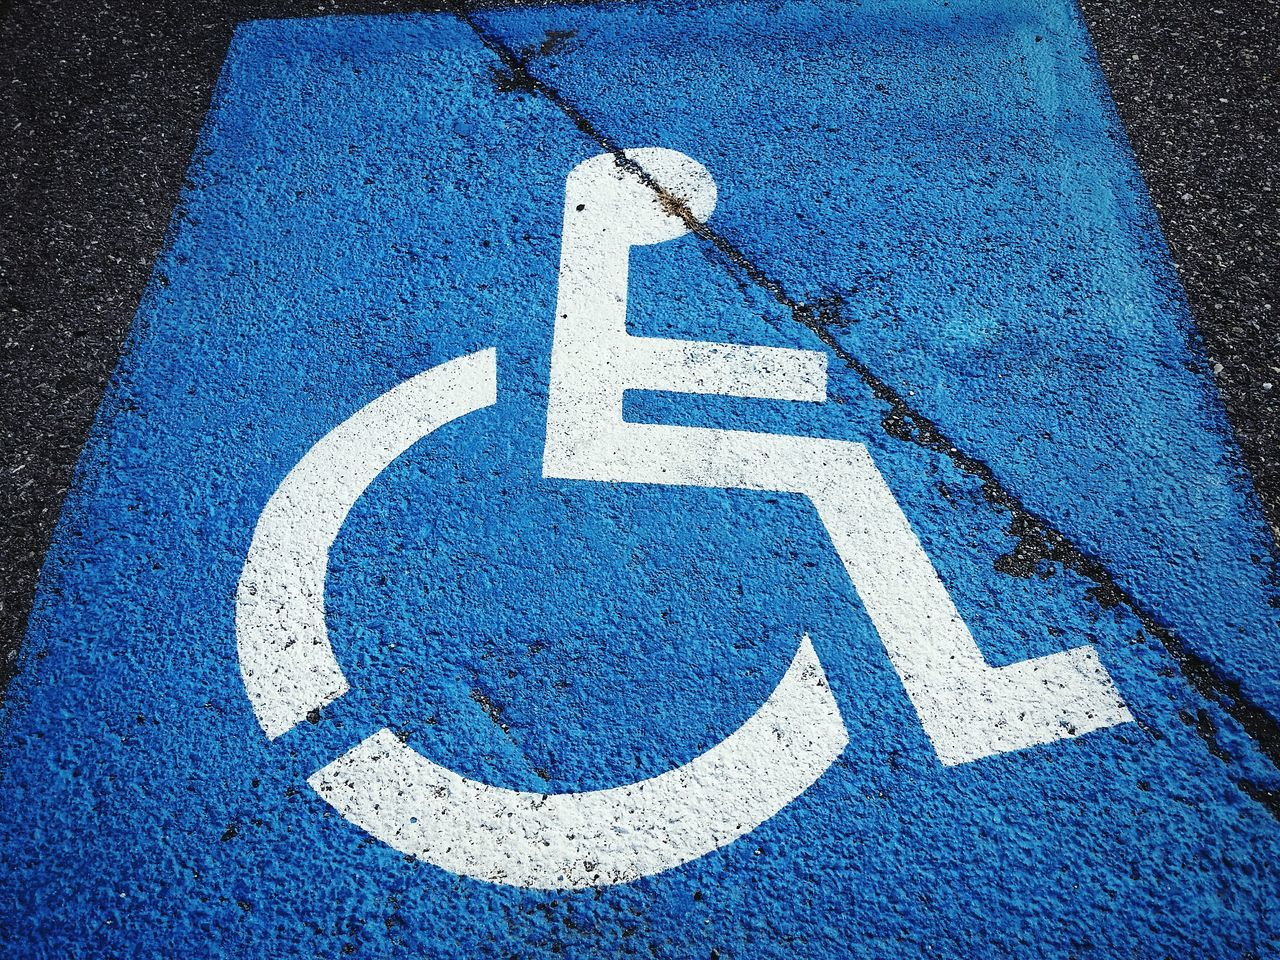 March Theme Circular Pattern Circular Disabled Access Disabled Sign Differing Abilities Wheelchair Transportation Blue Communication Parking Sign Day No People Wheelchair Access Symbol Close-up Outdoors Physical Impairment Disability  Round Circle Circular Shape The EyeEm Collection